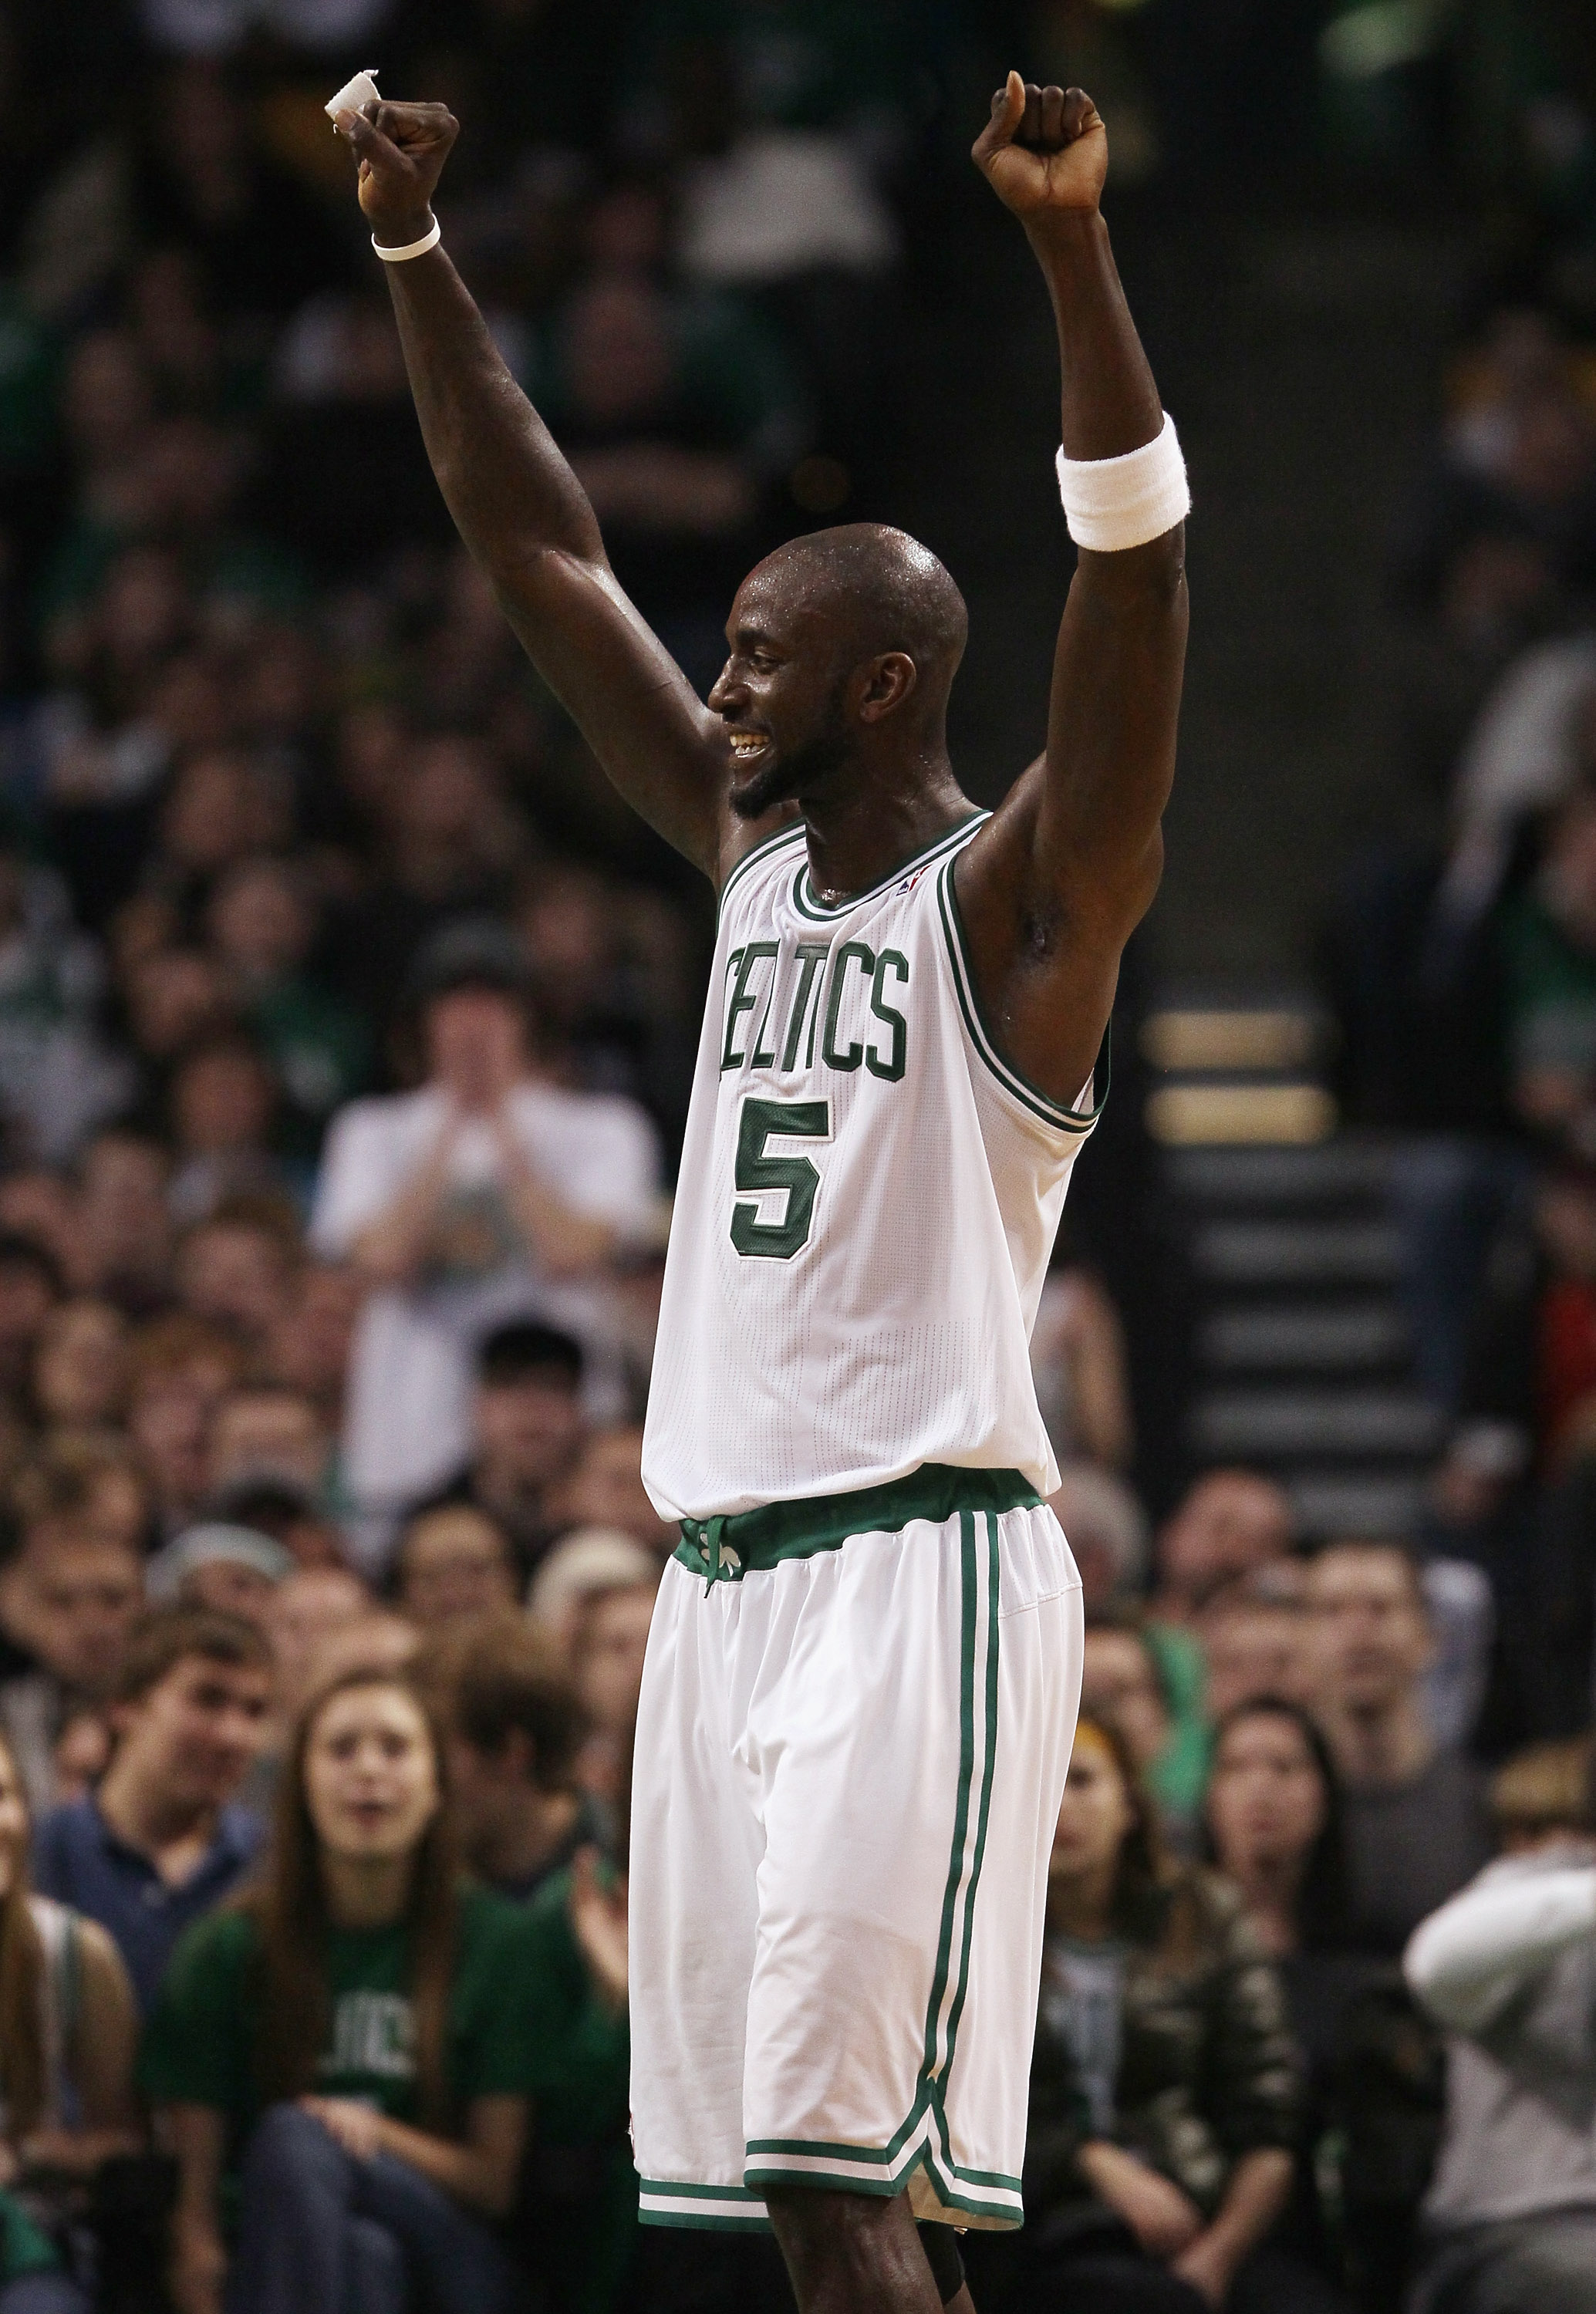 BOSTON, MA - JANUARY 21:  Kevin Garnett #5 of the Boston Celtics celebrates after teammate Ray Allen attempted to block a shot by the Utah Jazz on January 21, 2011 at the TD Garden in Boston, Massachusetts.  The Celtics defeated the Jazz 110-86. NOTE TO U